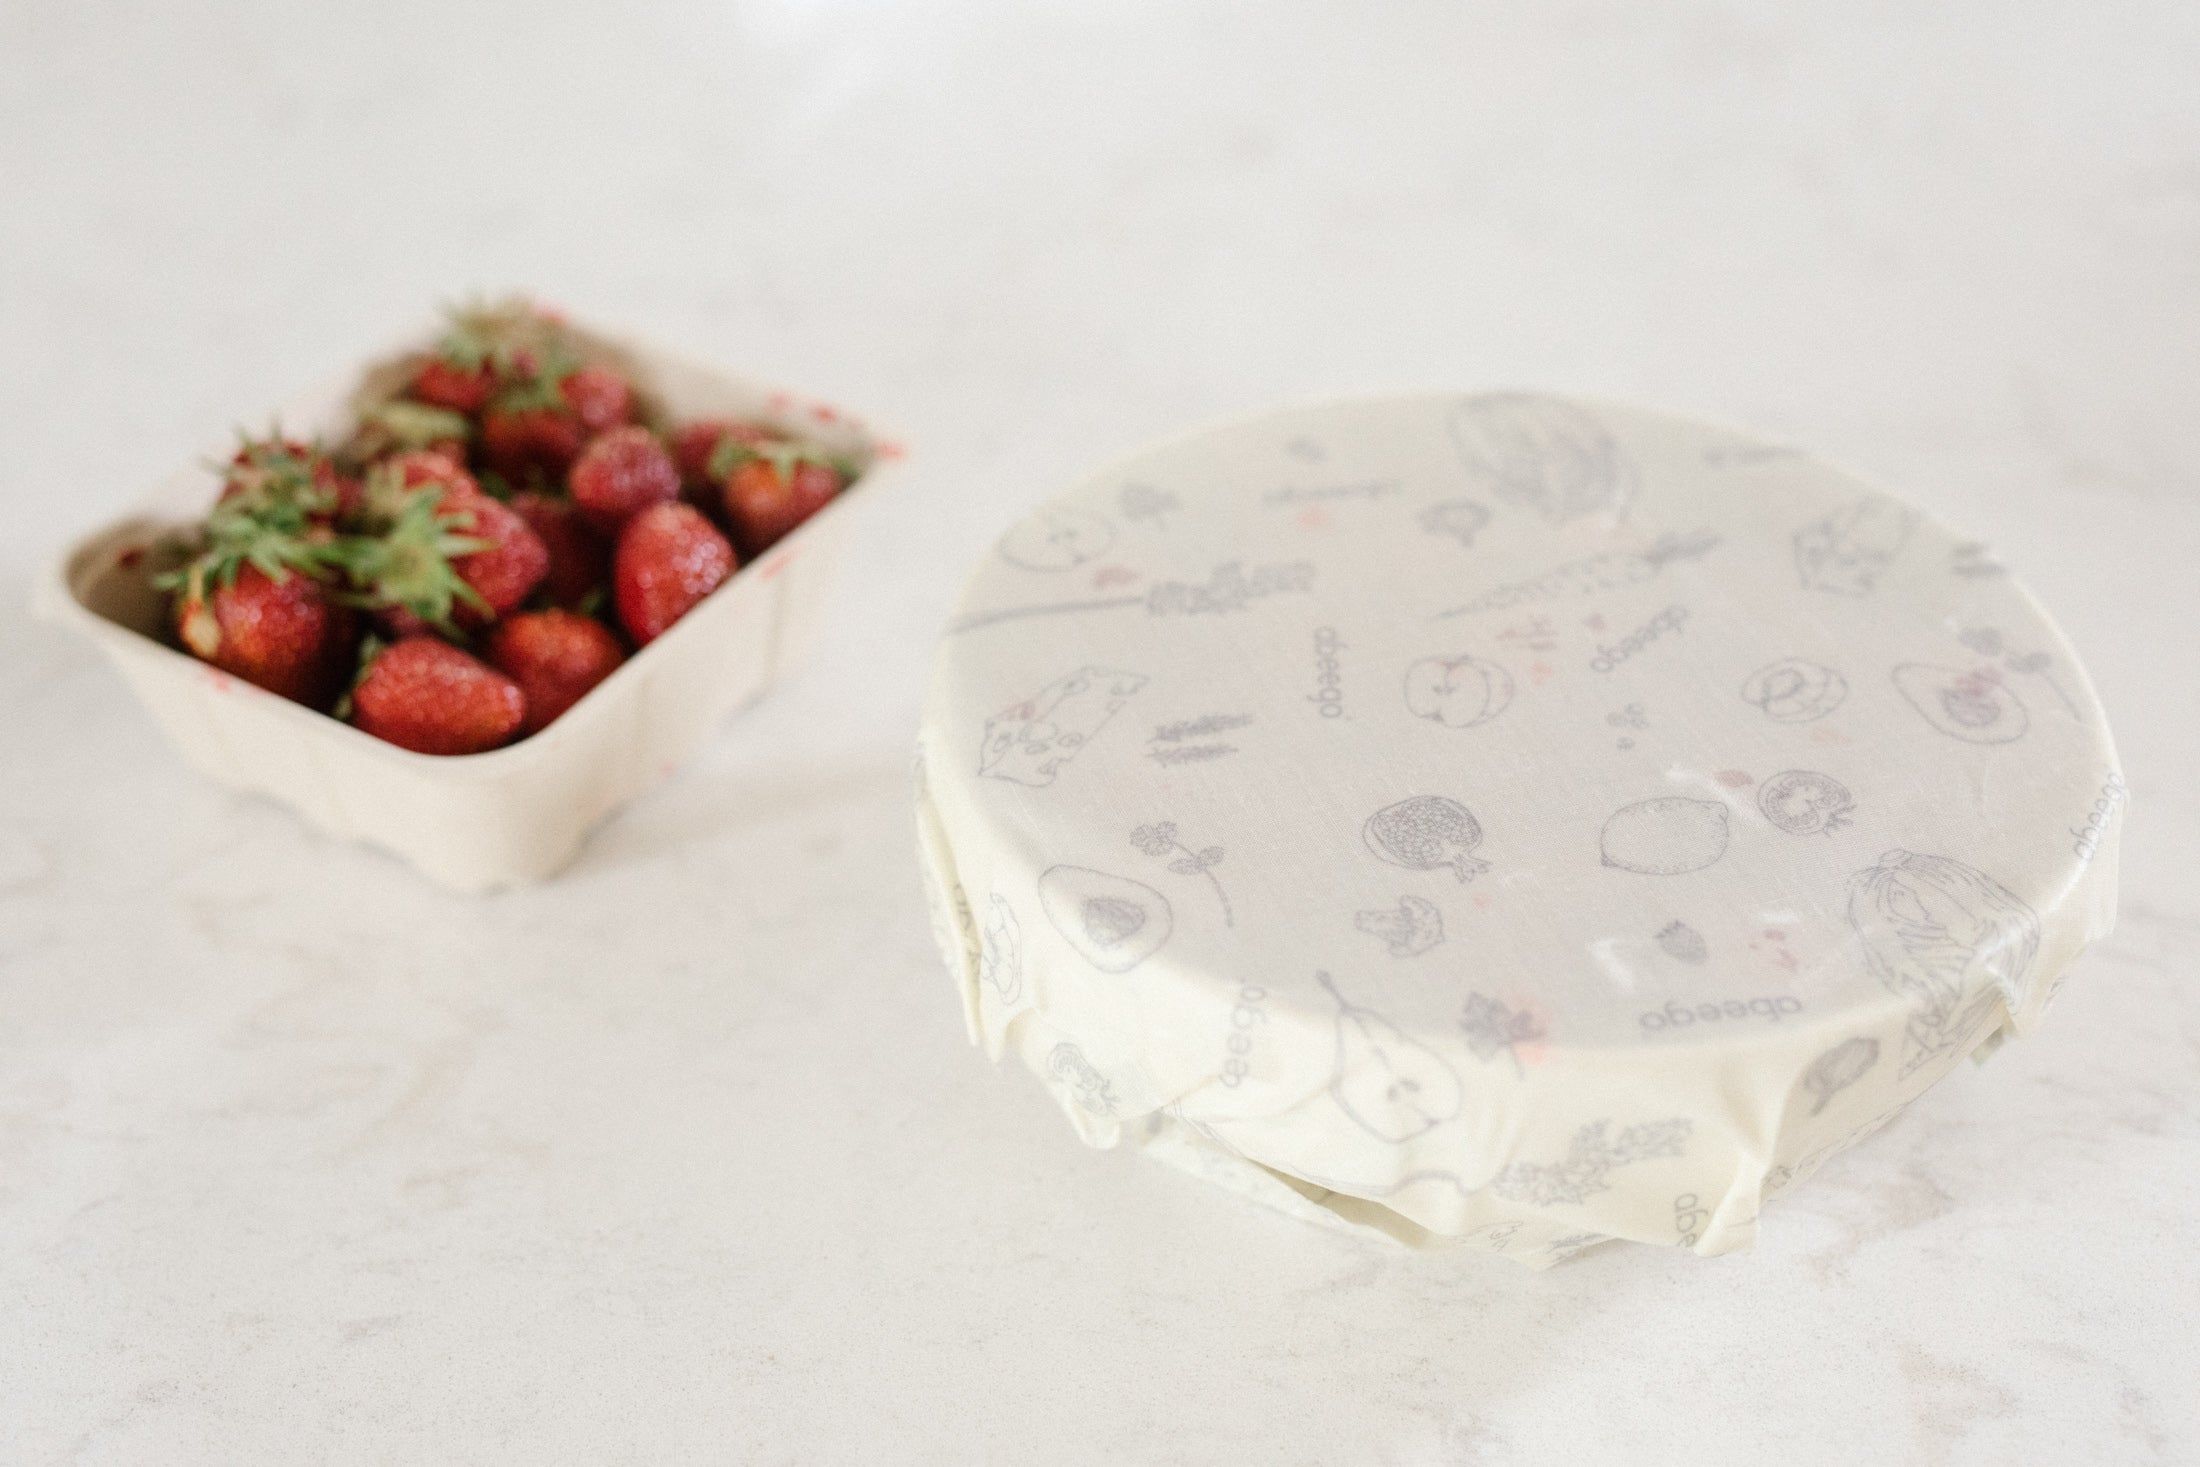 Cover a bowl with Abeego wraps to keep strawberries fresh